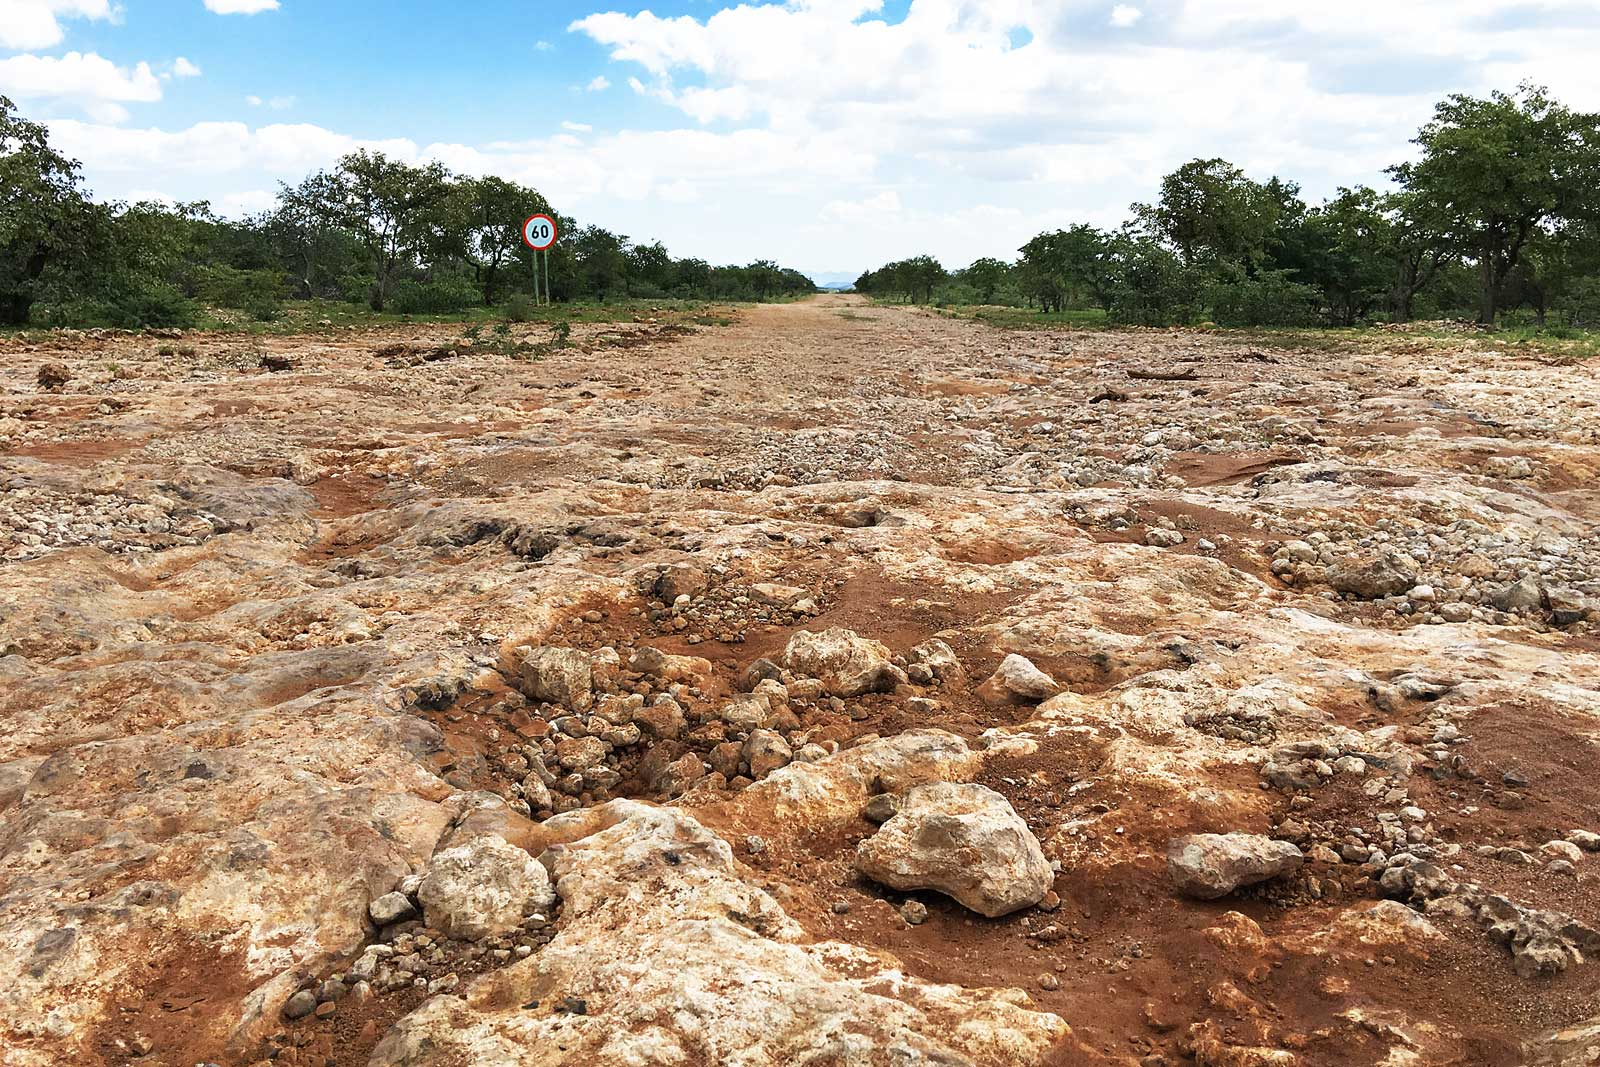 The rough road conditions in Namibia